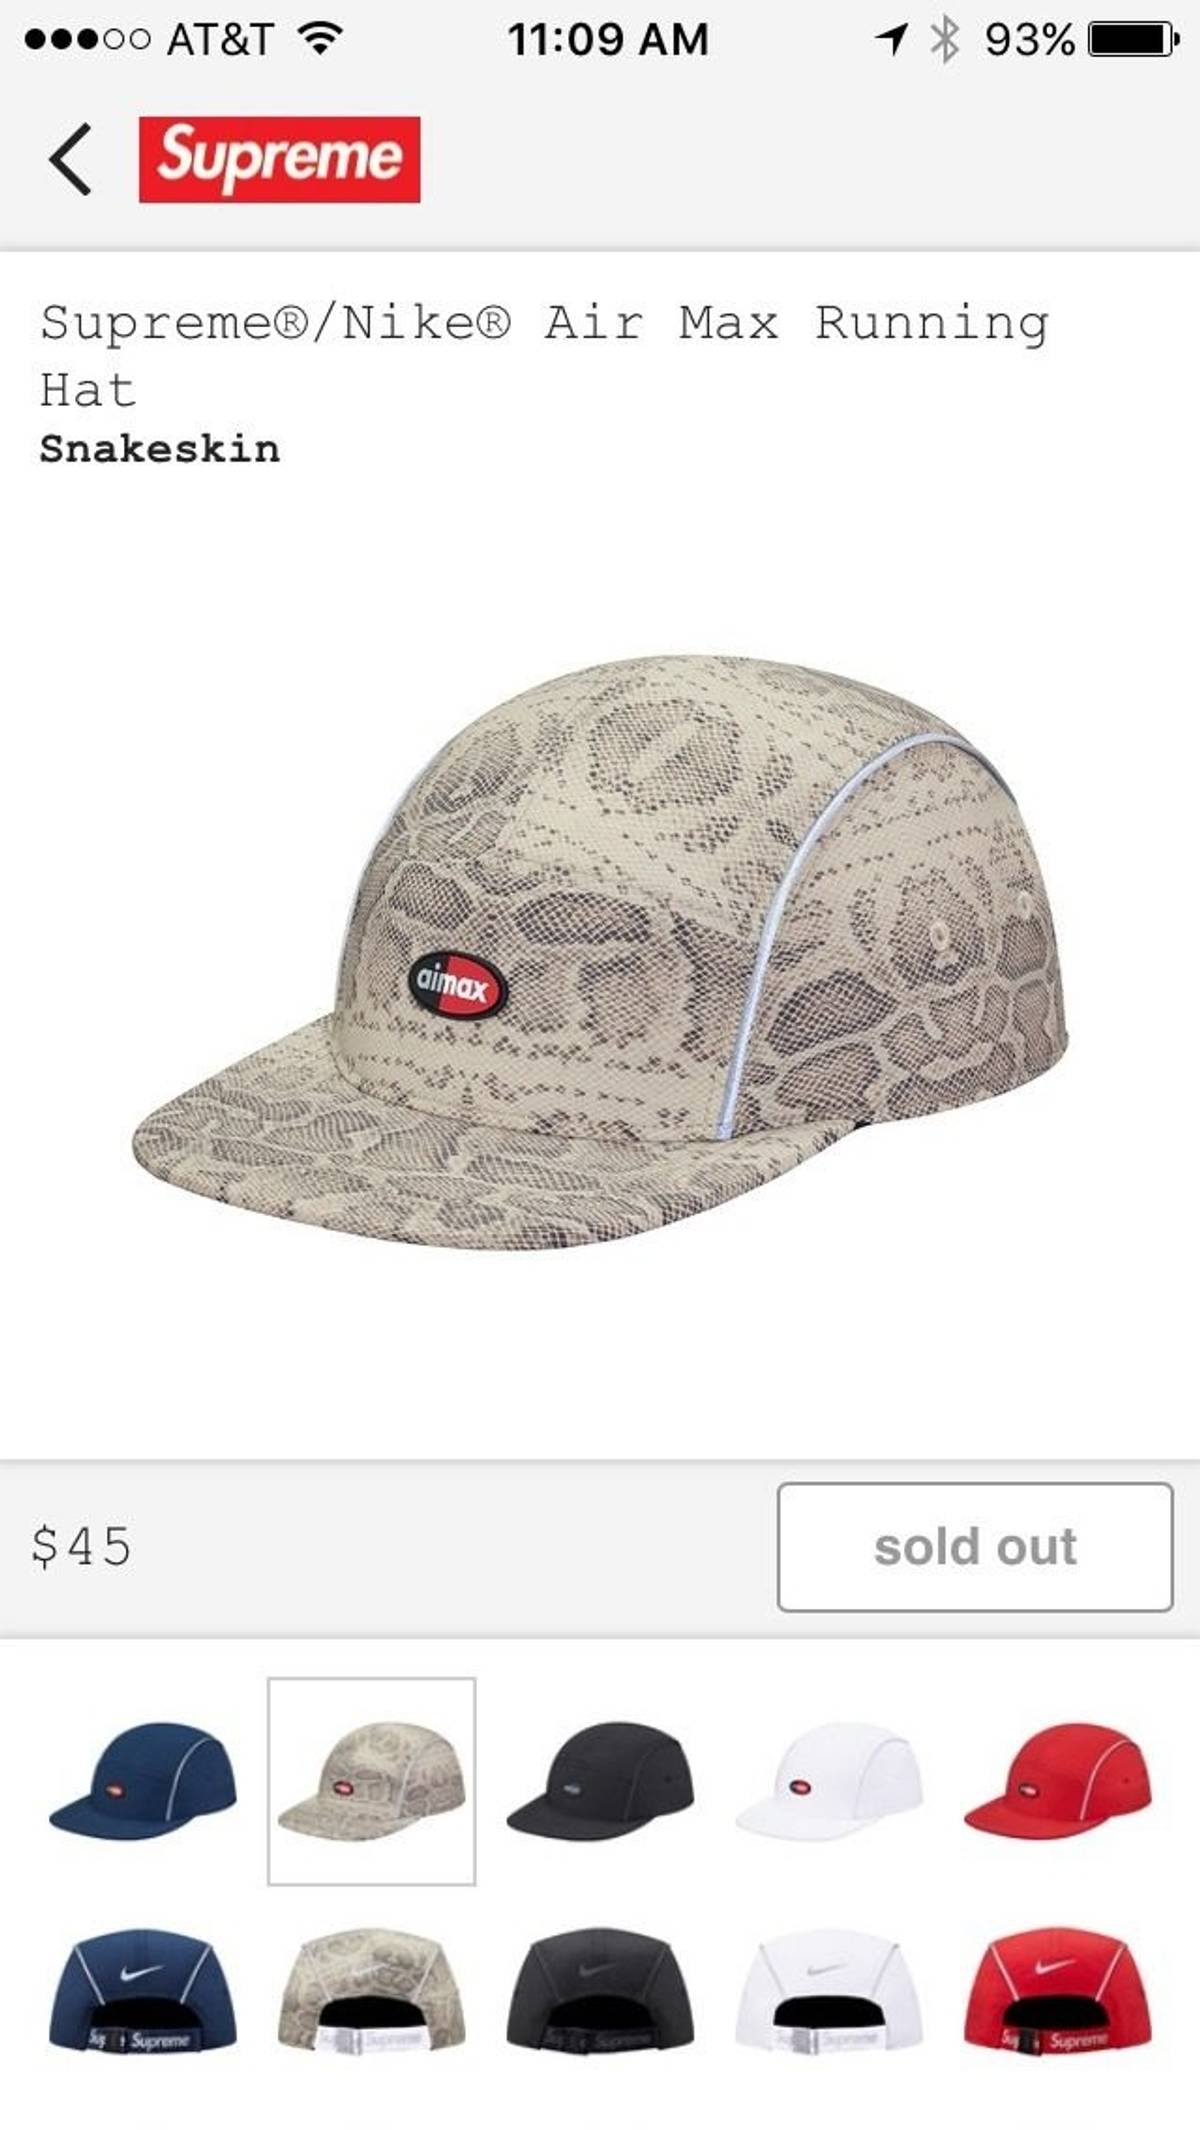 b774cb2def0 Supreme Supreme X Nike Snakeskin Cap Running Hat Size one size - Hats for  Sale - Grailed